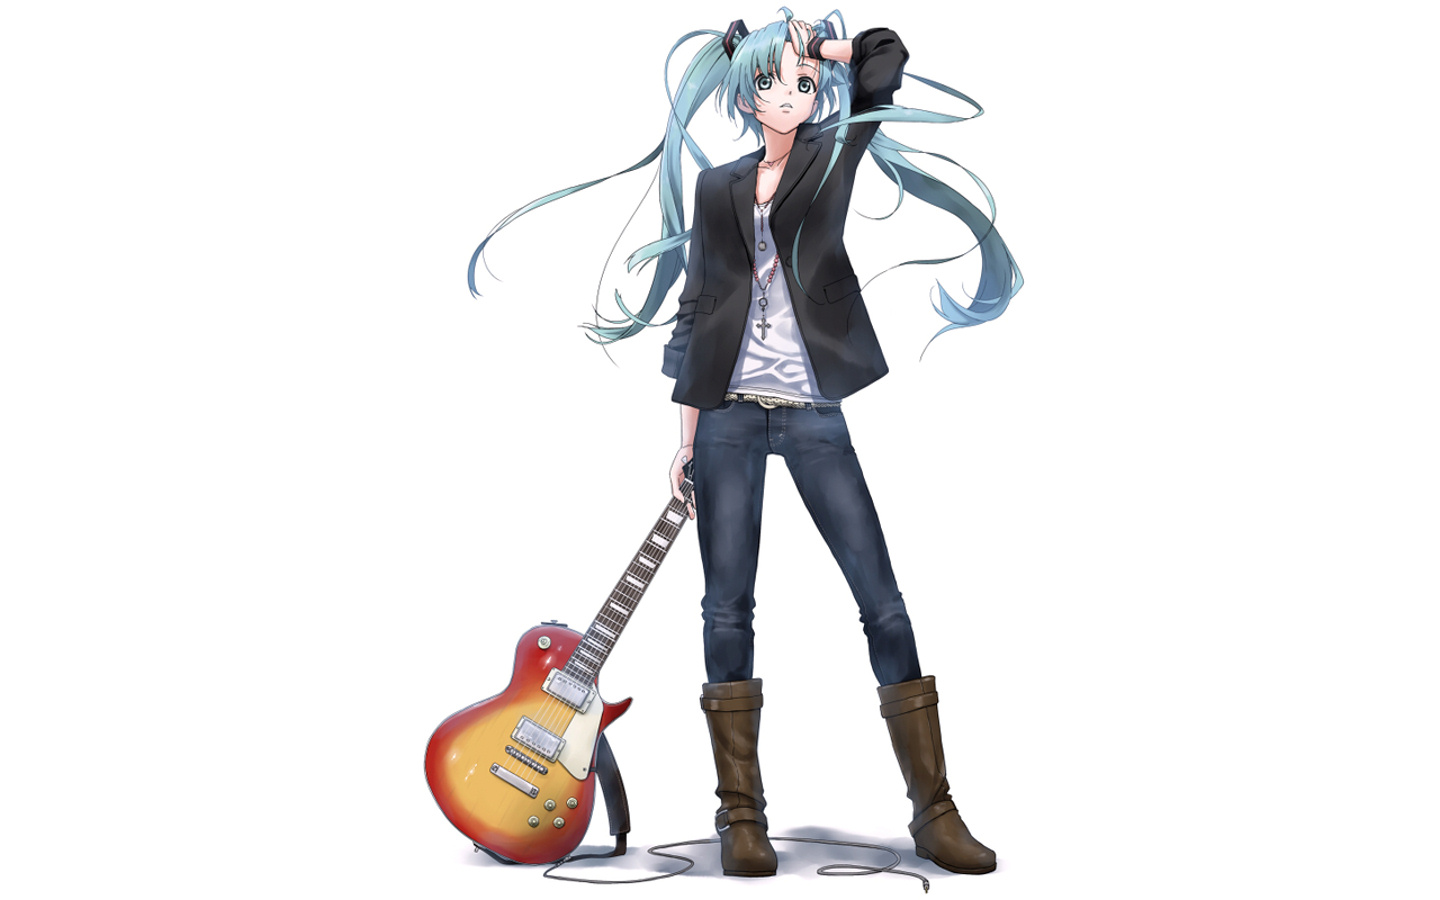 Anime Girl Guitar Pictures, Images & Photos | Photobucket